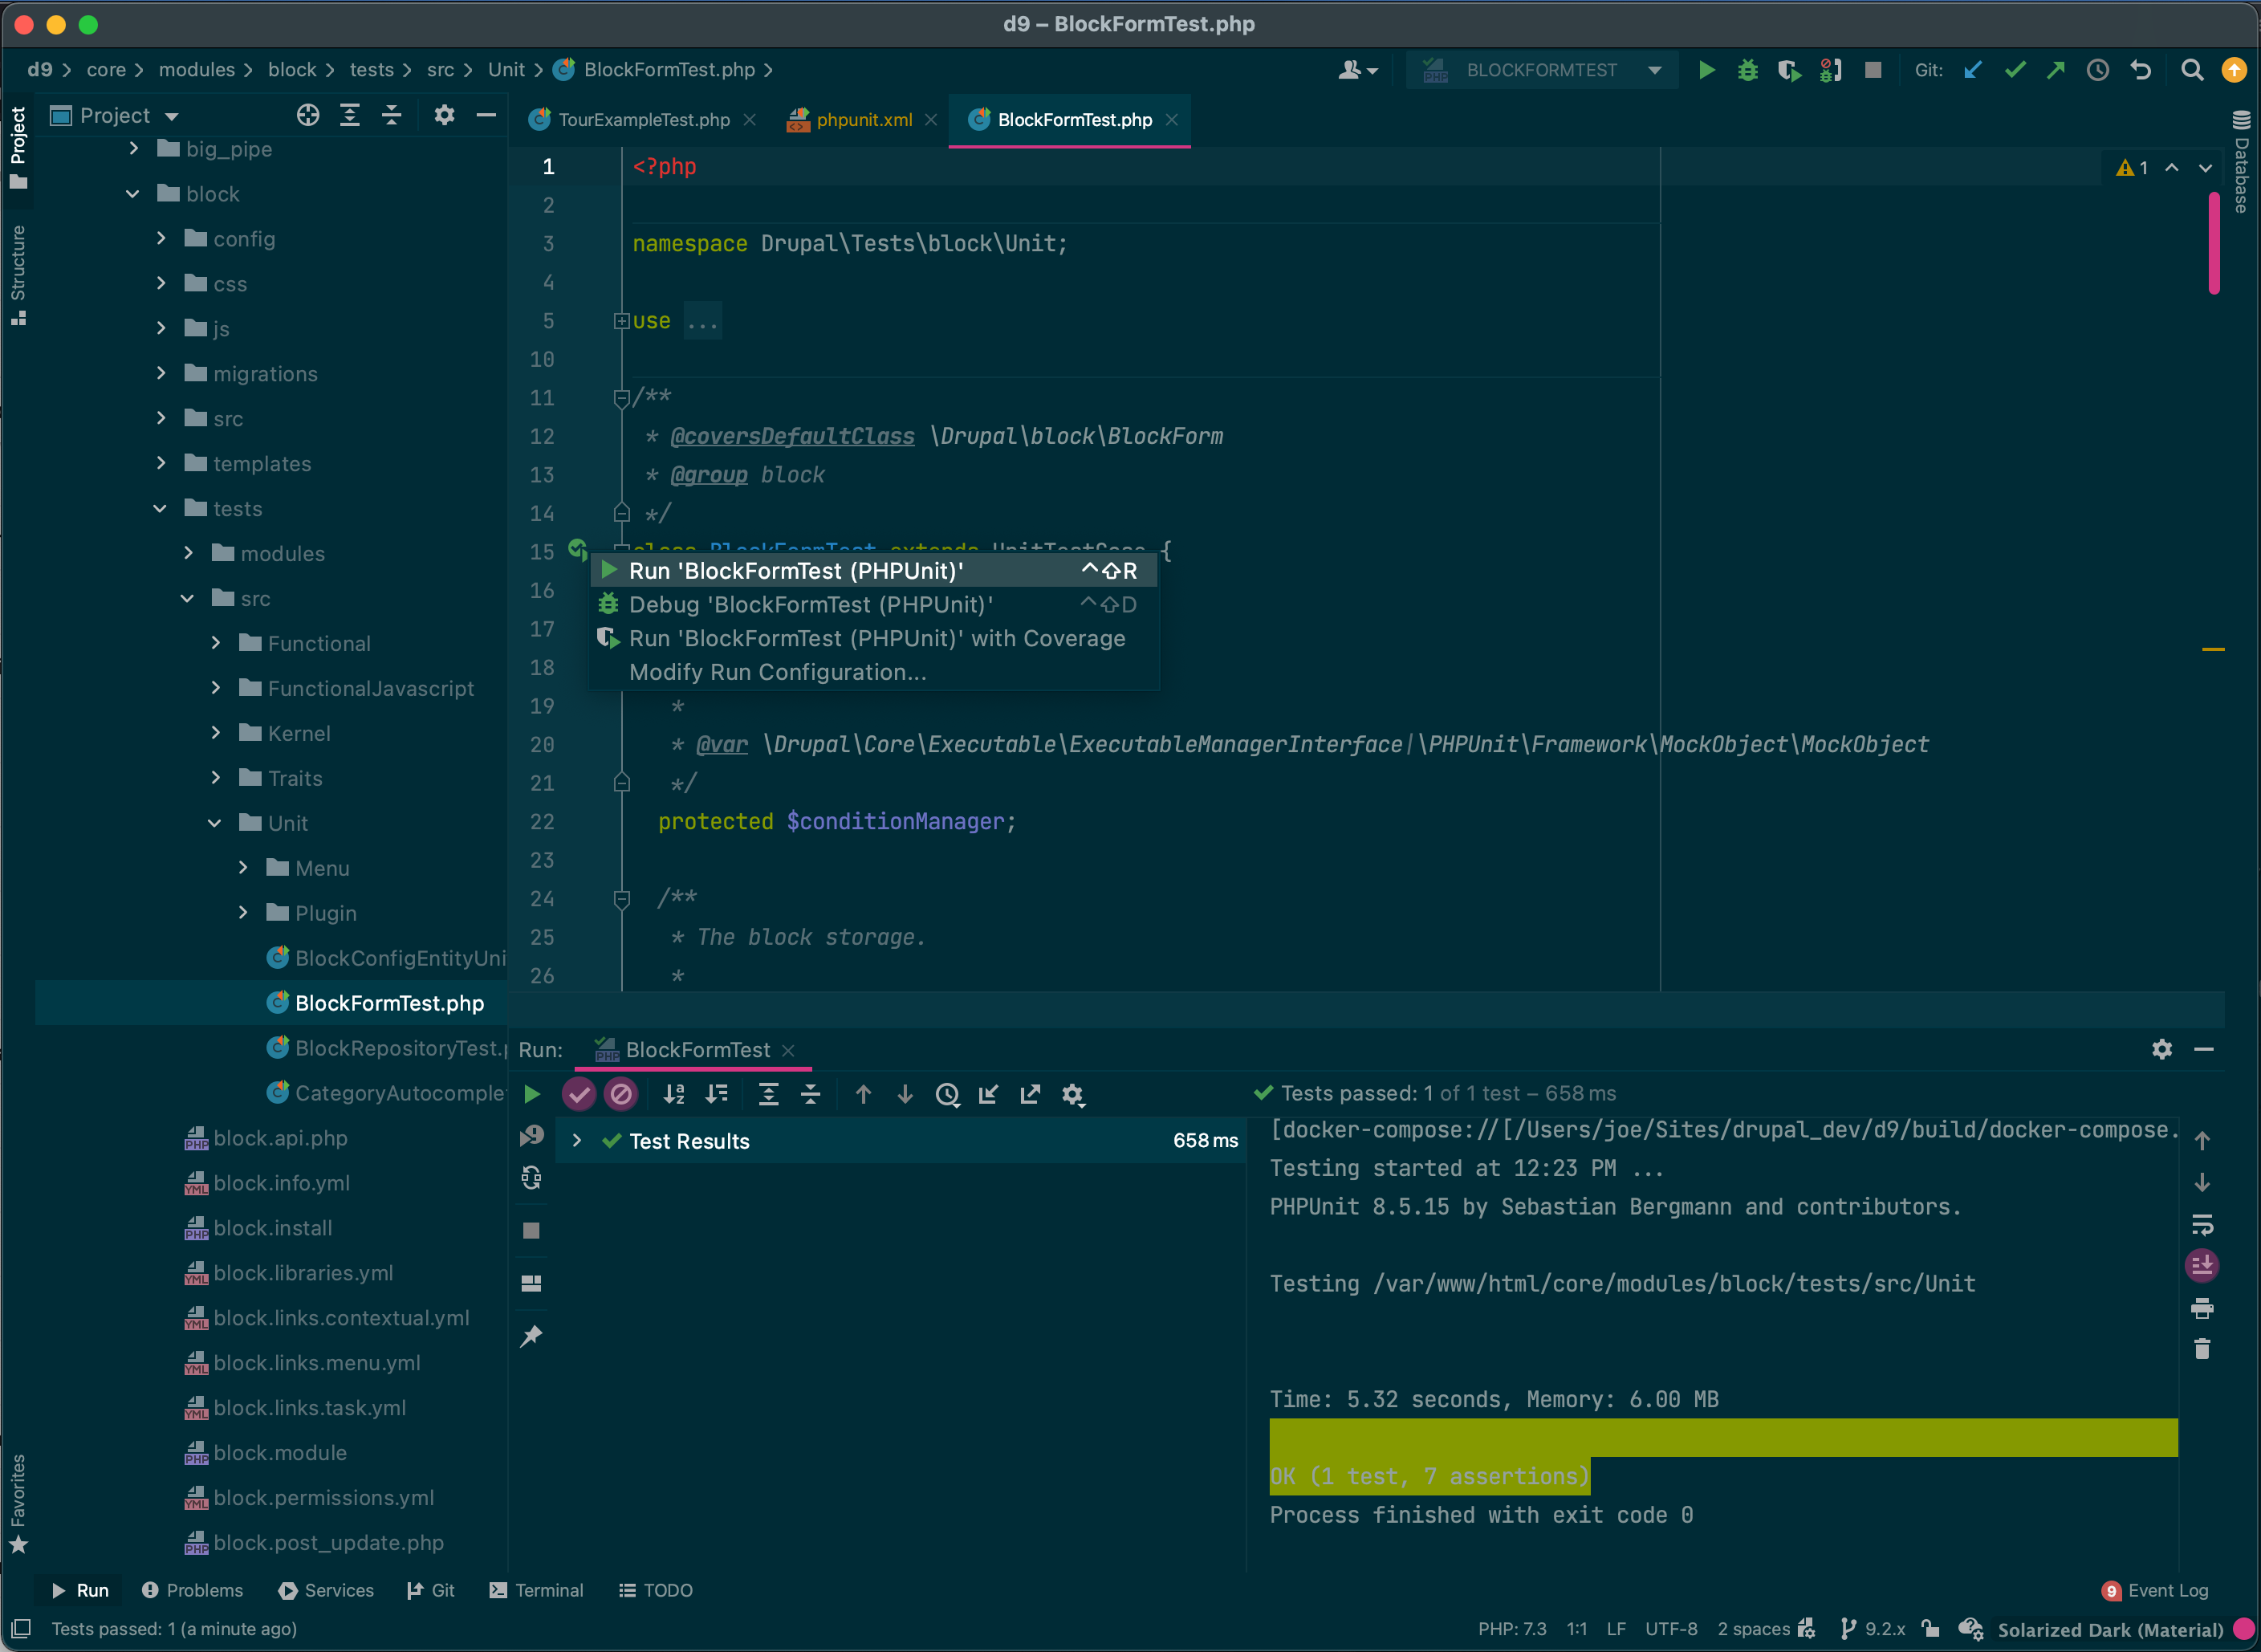 PhpStorm IDE showing results of running a single phpunit test in the UI.